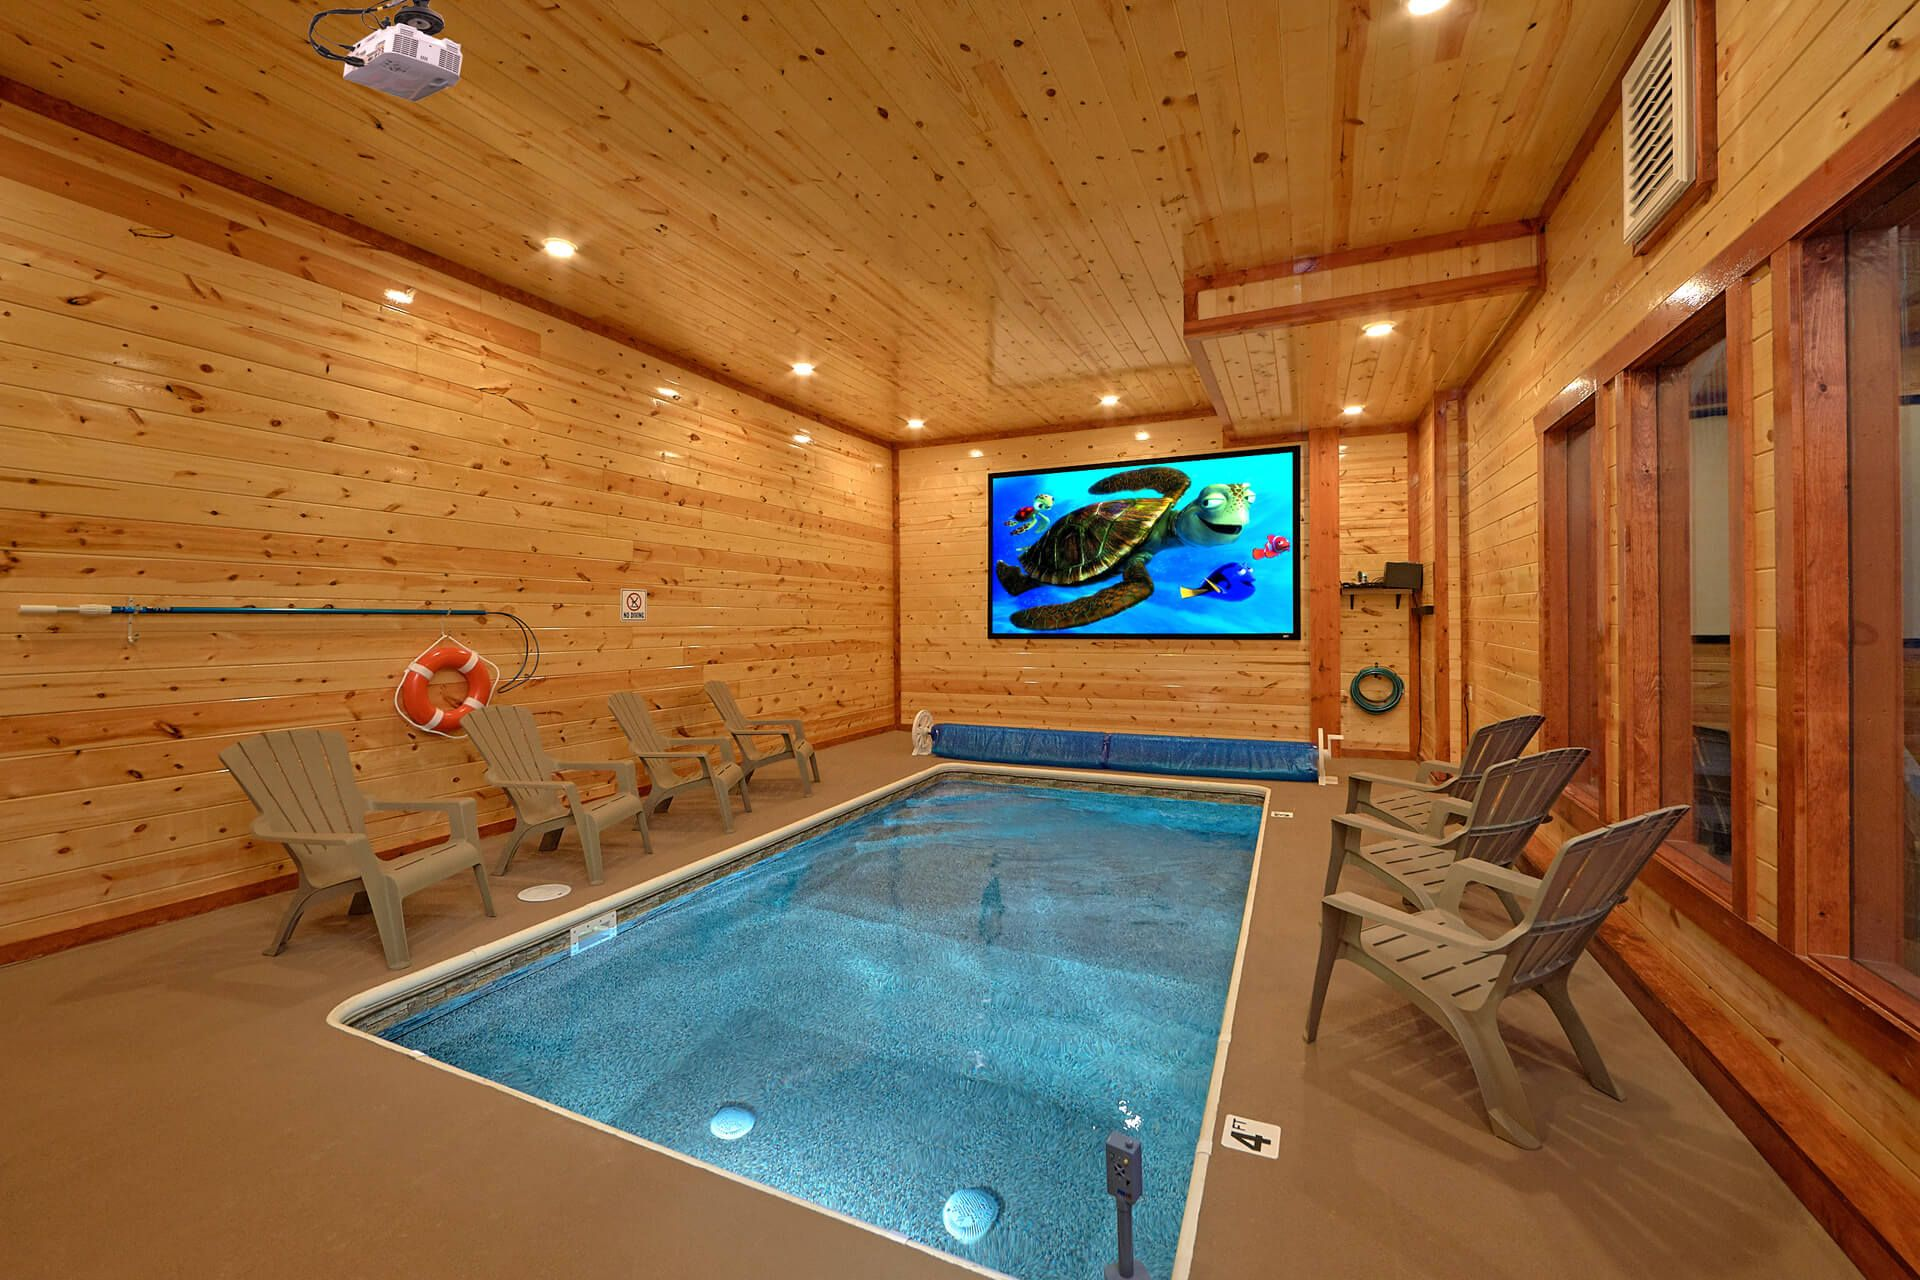 Gatlinburg Cabin Rentals In The Smoky Mountains Pool Bedroom Indoor Pool House Small Indoor Pool